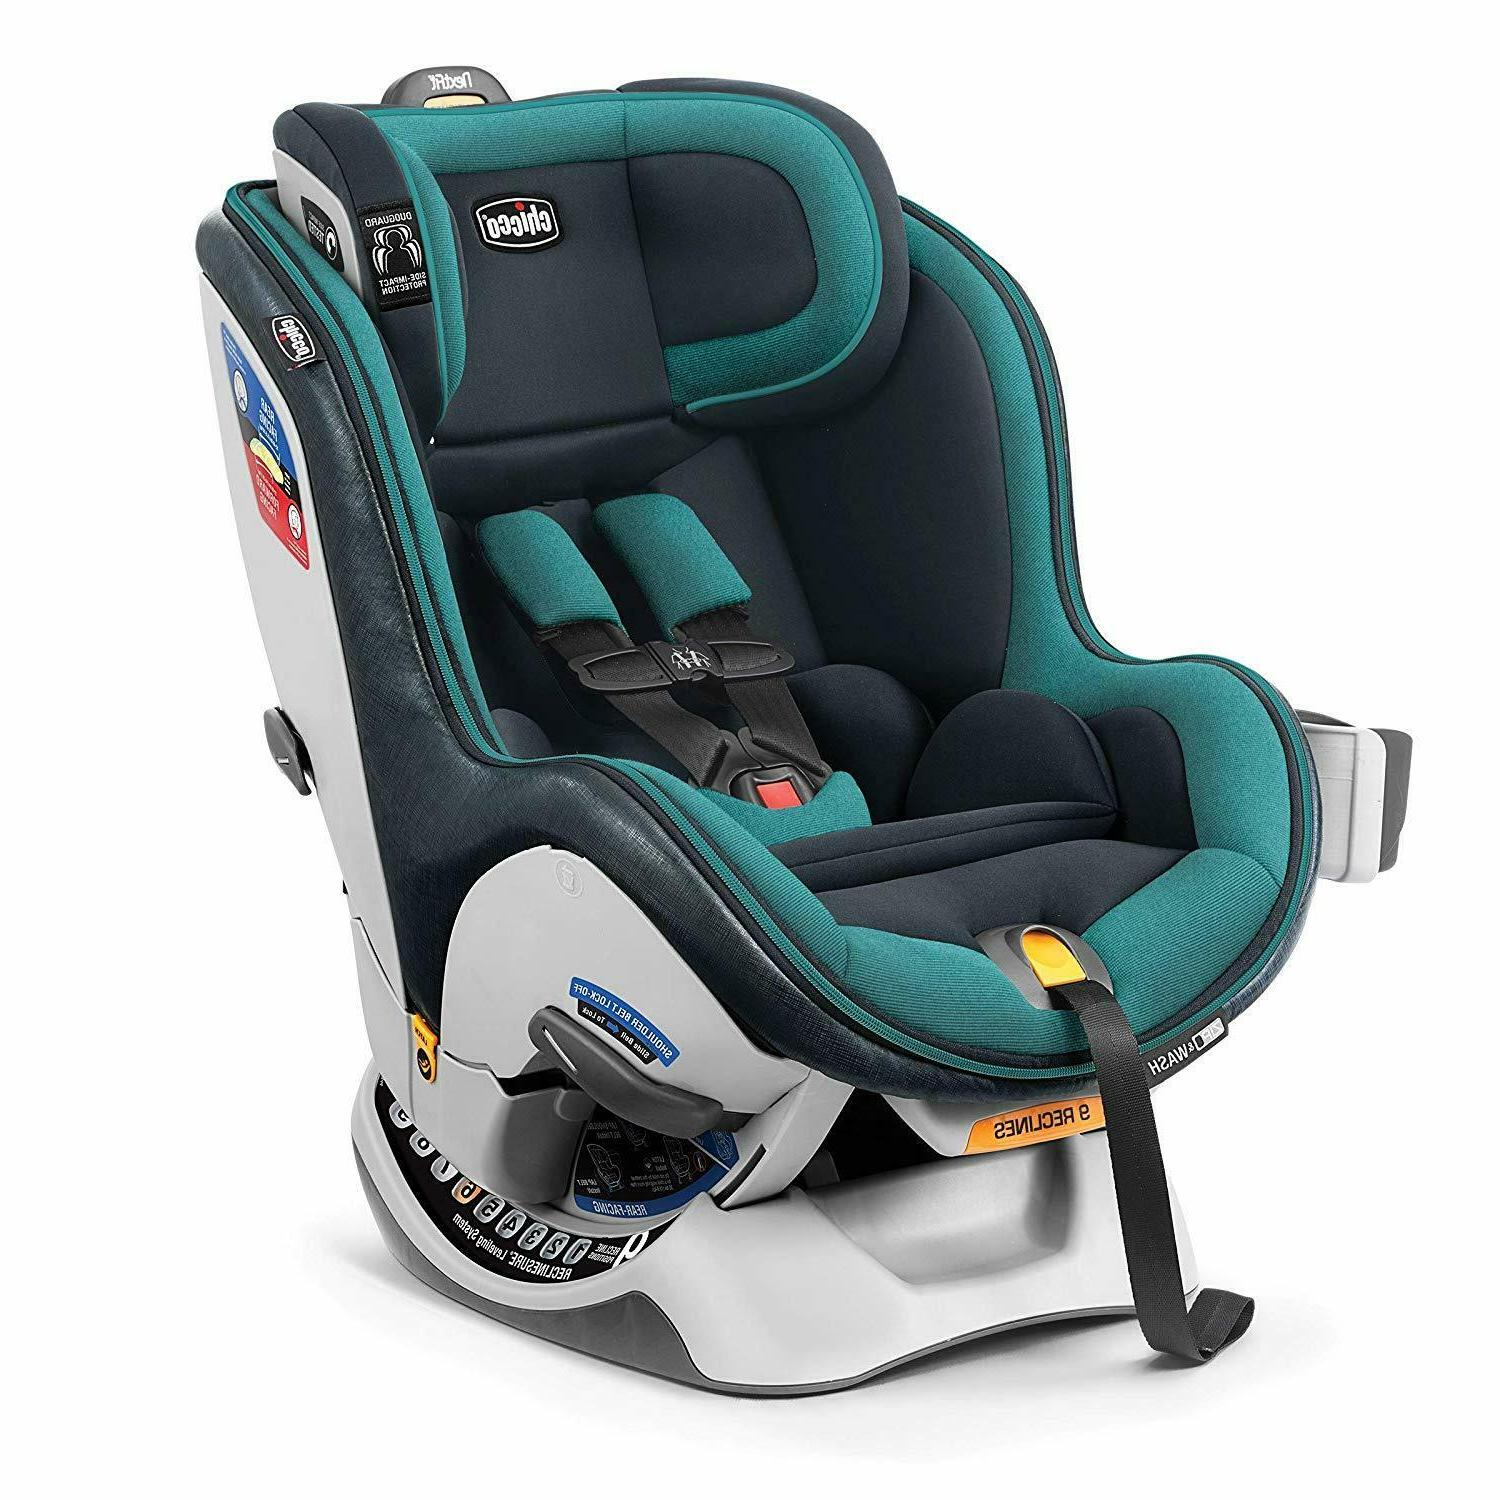 new nextfit zip convertible car seat in